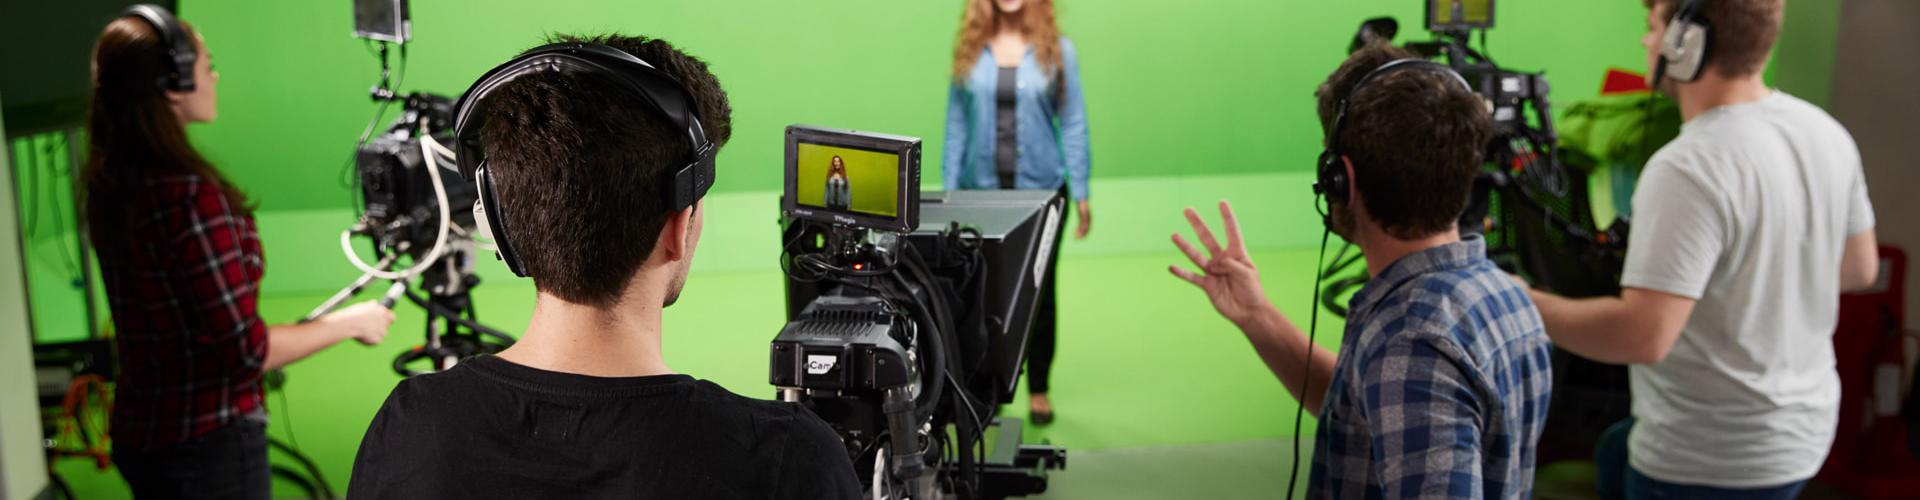 Solent film and TV students using the green screen facilities